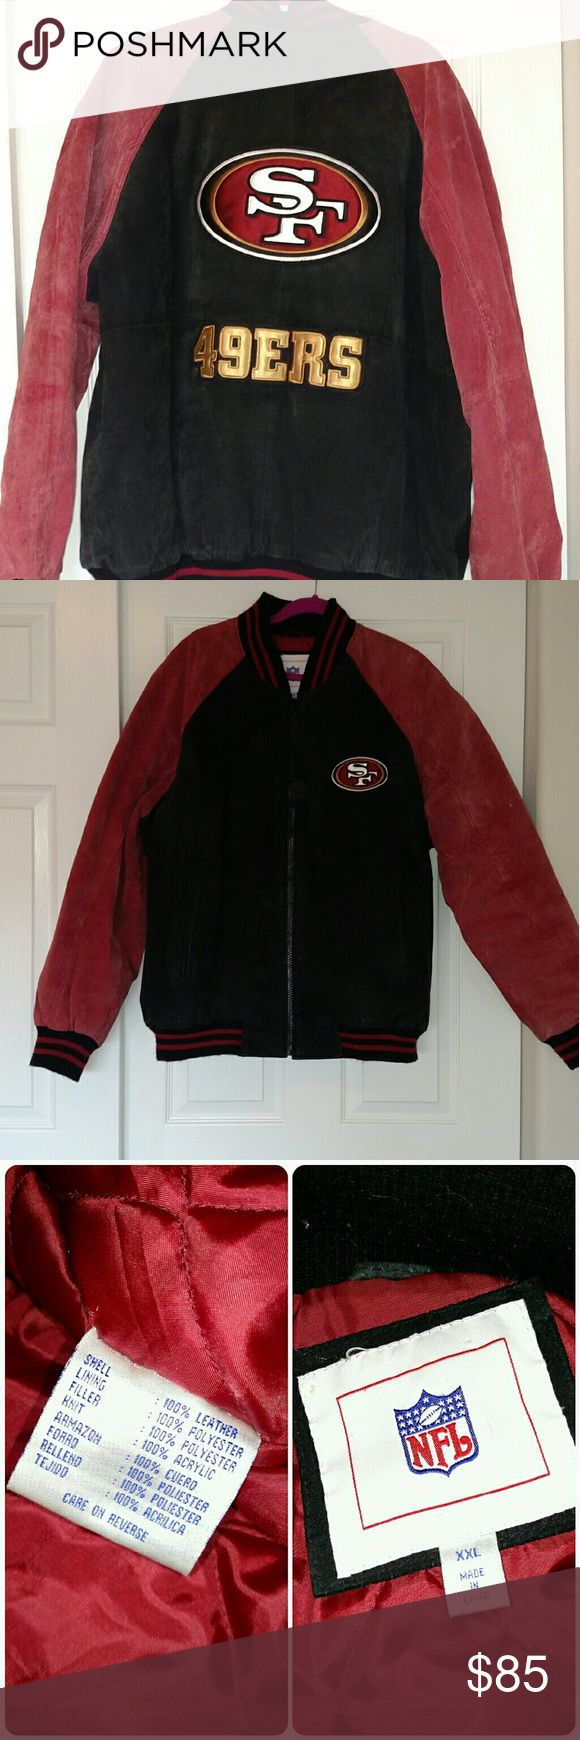 NFL Suede 49ers Jacket Gently worn NFL Suede Leather 49ers jacket. Logo on front, large logo on back. Black and red elastic bands at wrists, neck and bottom. Shows some wear on suede around neck and by zipper (see last pics). Lined in red. Has been hanging in basement closet for many years, so smells stale, but otherwise clean. NFL Jackets & Coats